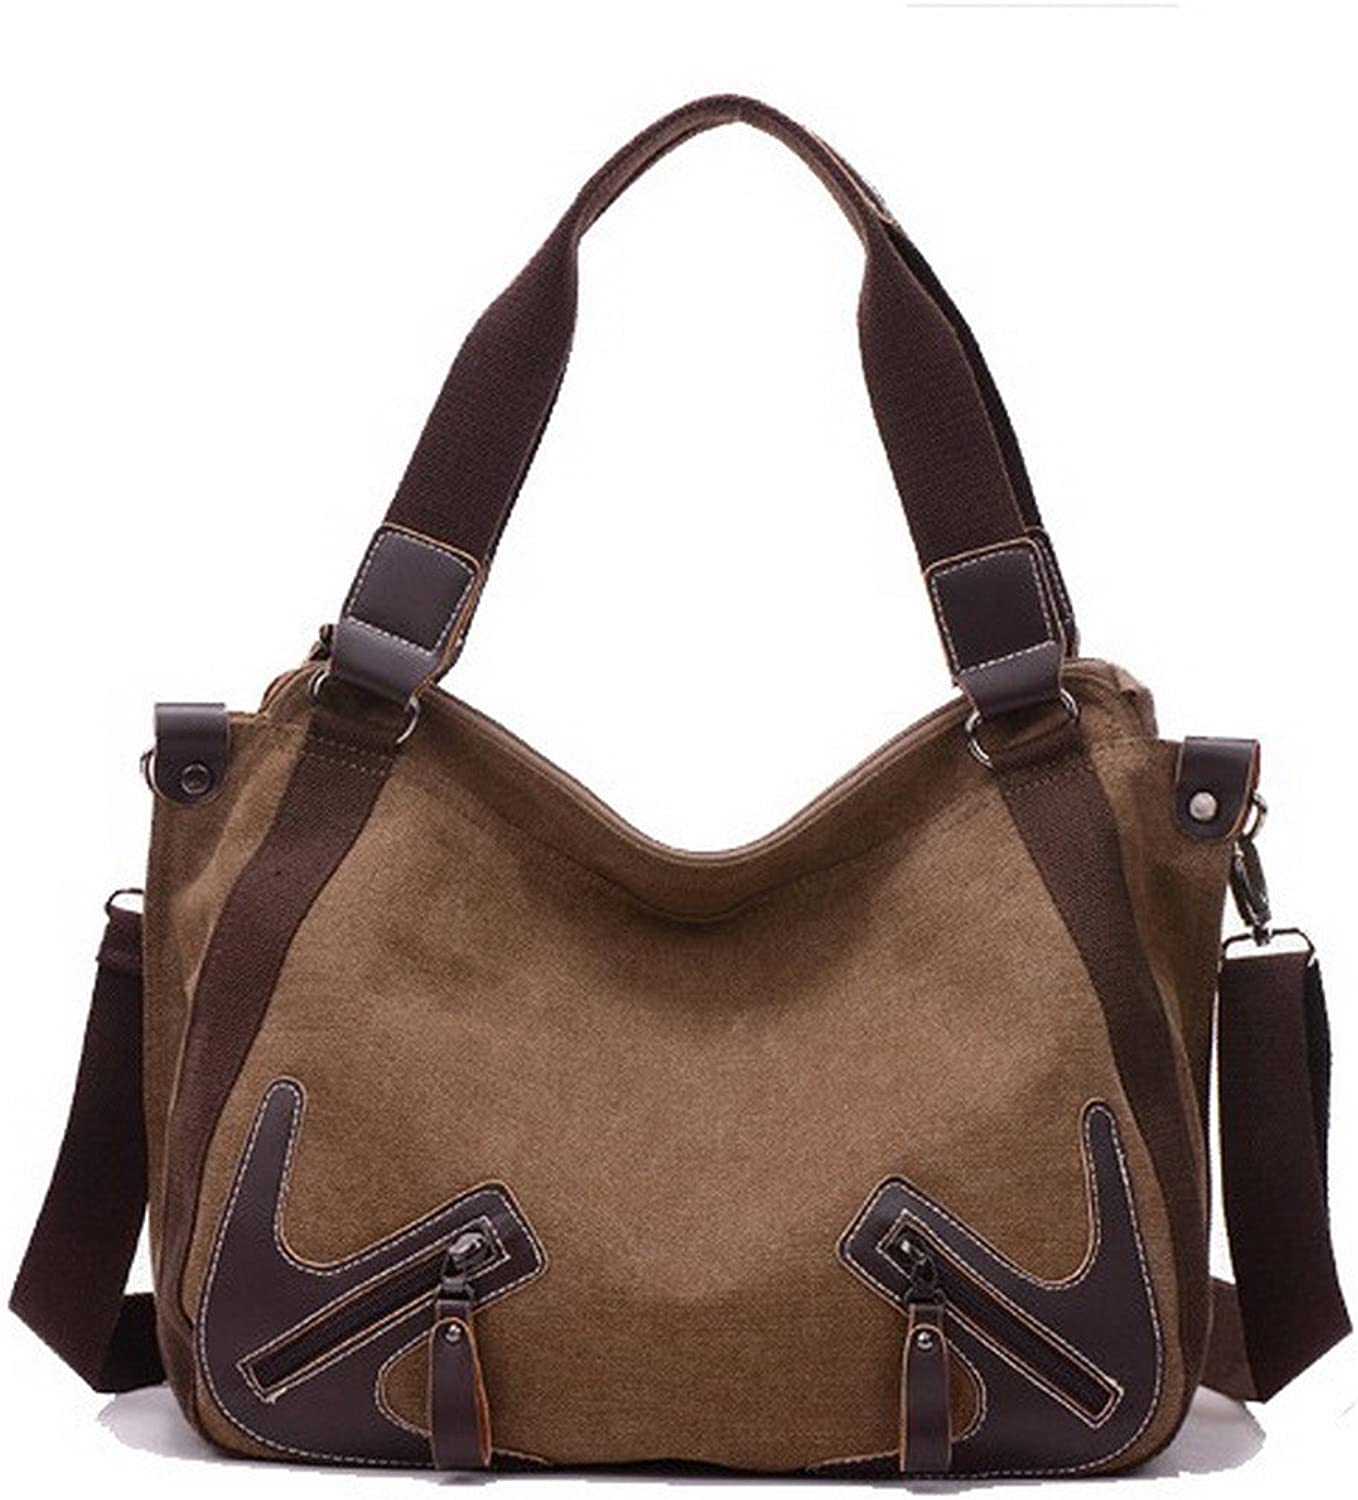 WeenFashion Women's ToteStyle Canvas Crossbody Bags Shopping Tote Bags, AMGBW181470